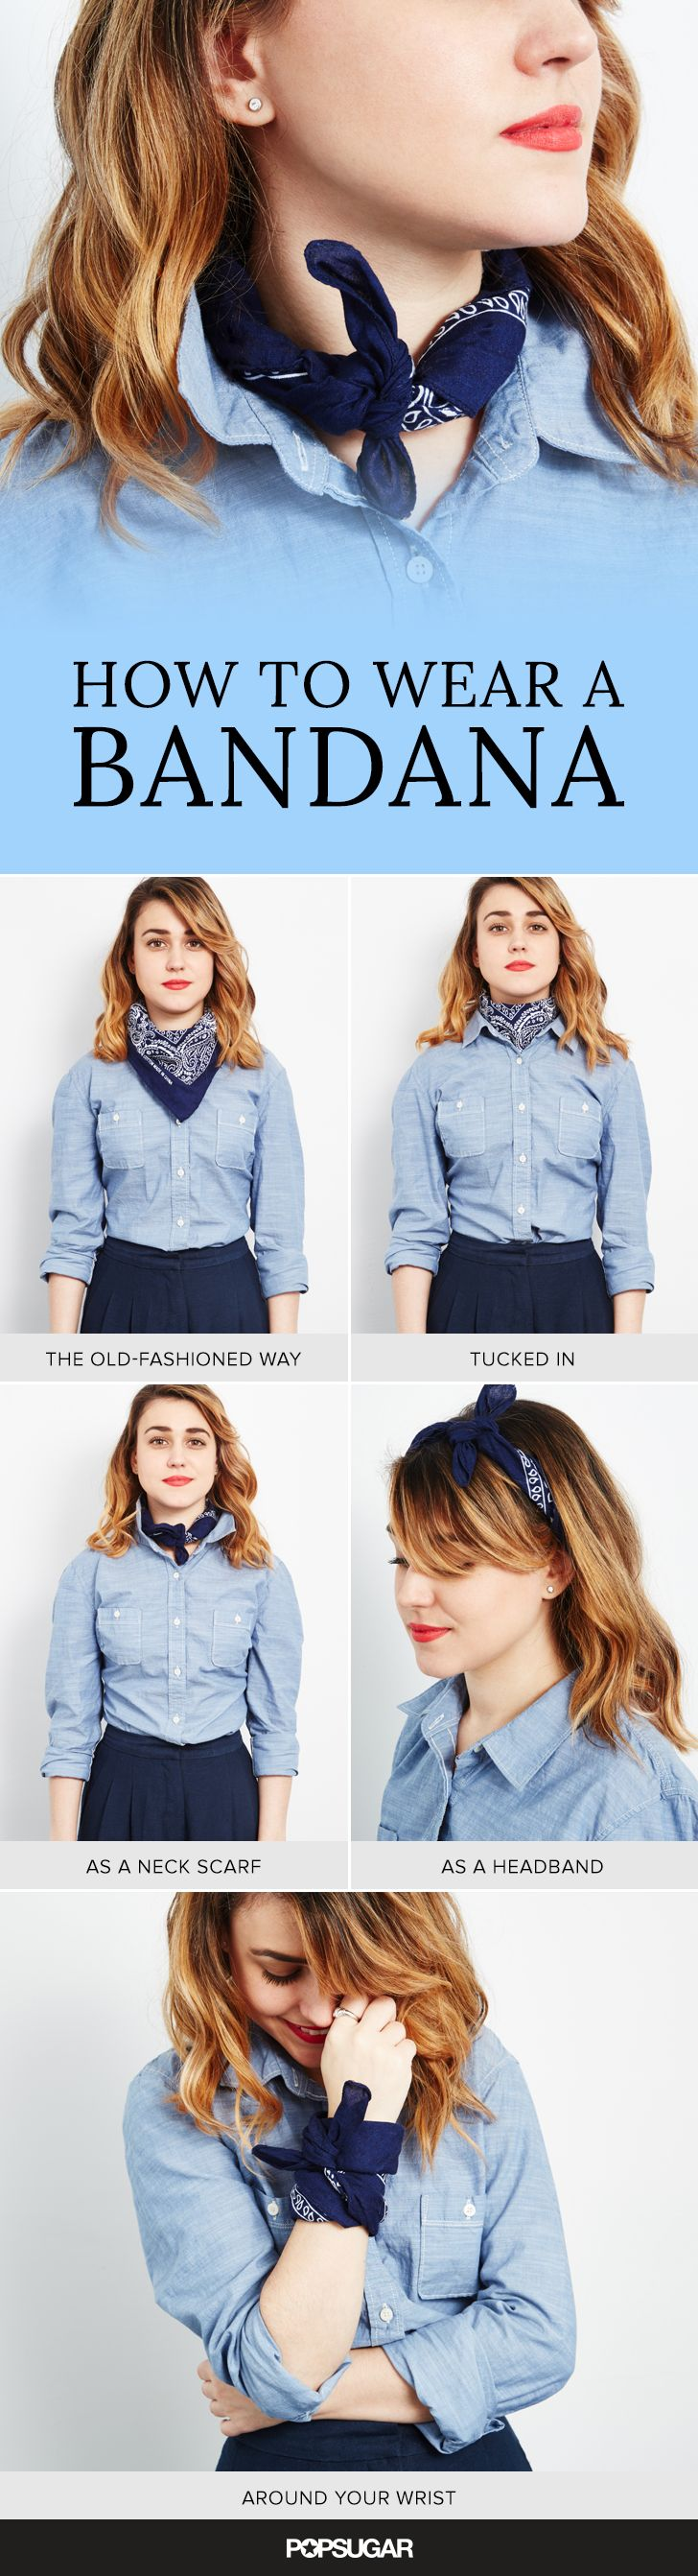 How to wear and style a bandana